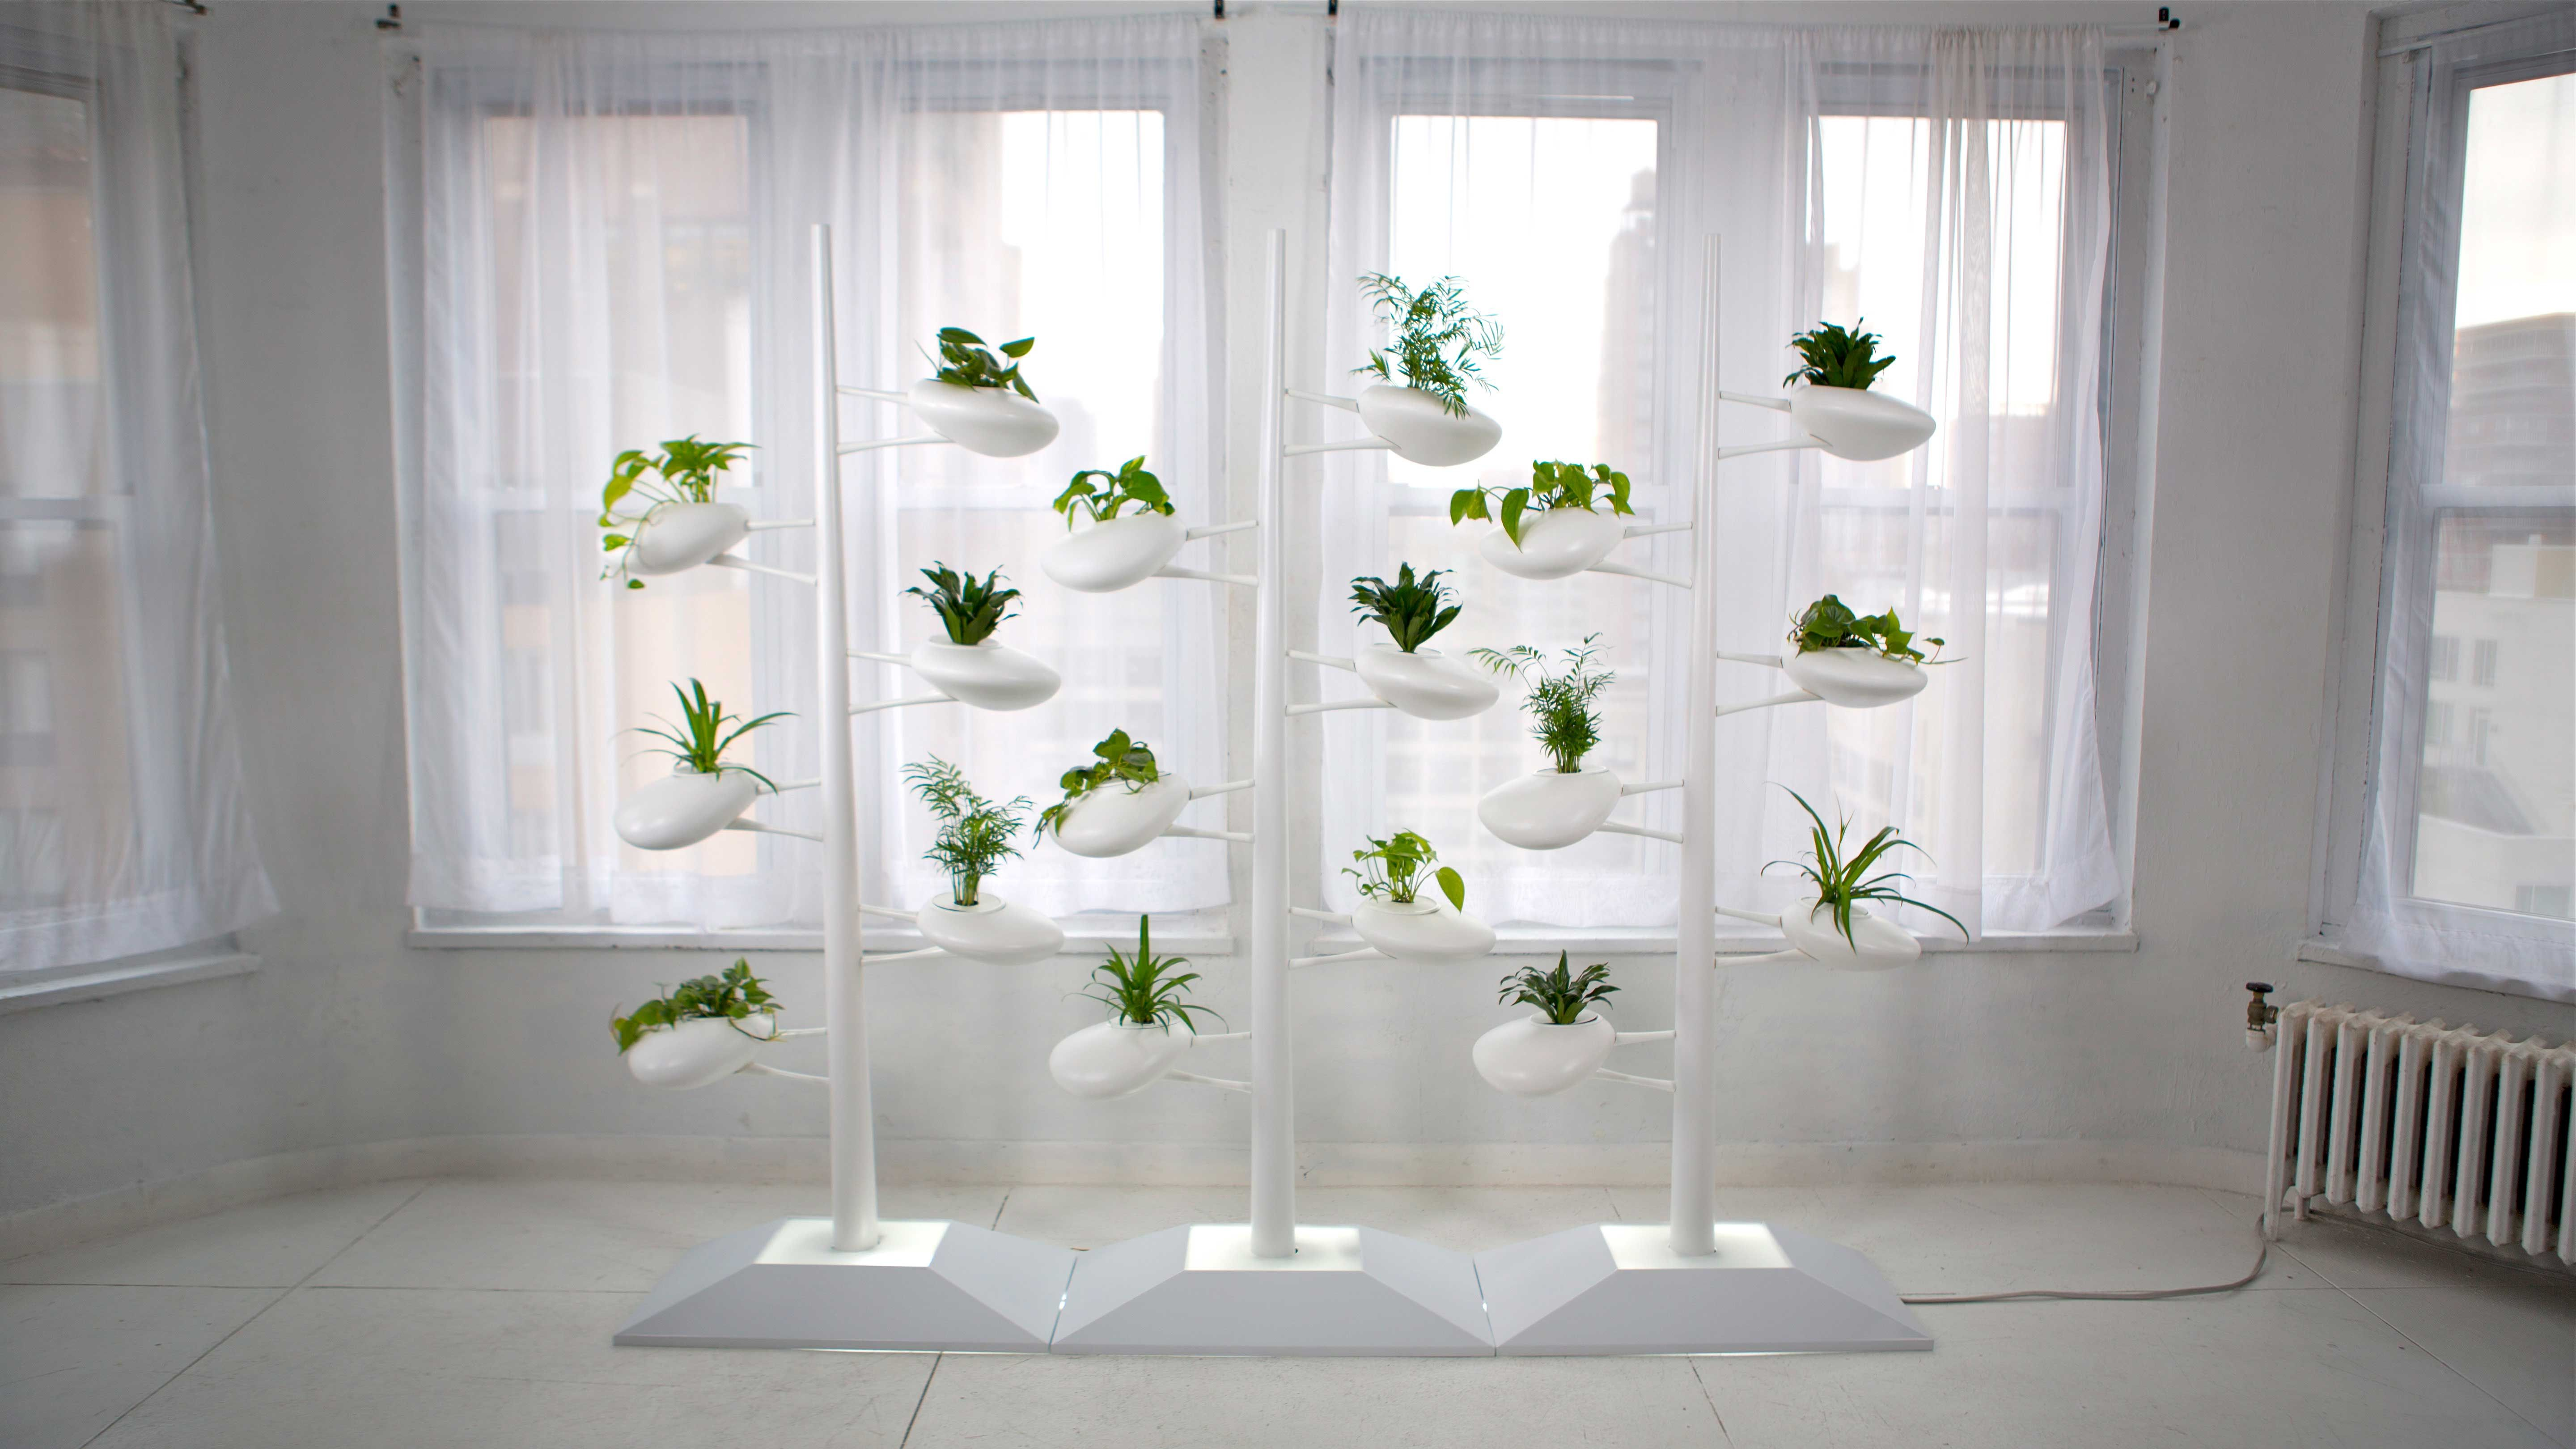 Hydroponic Planter Holders from Danielle Trofe Adding Green Accents to  Modern Interior Design-front